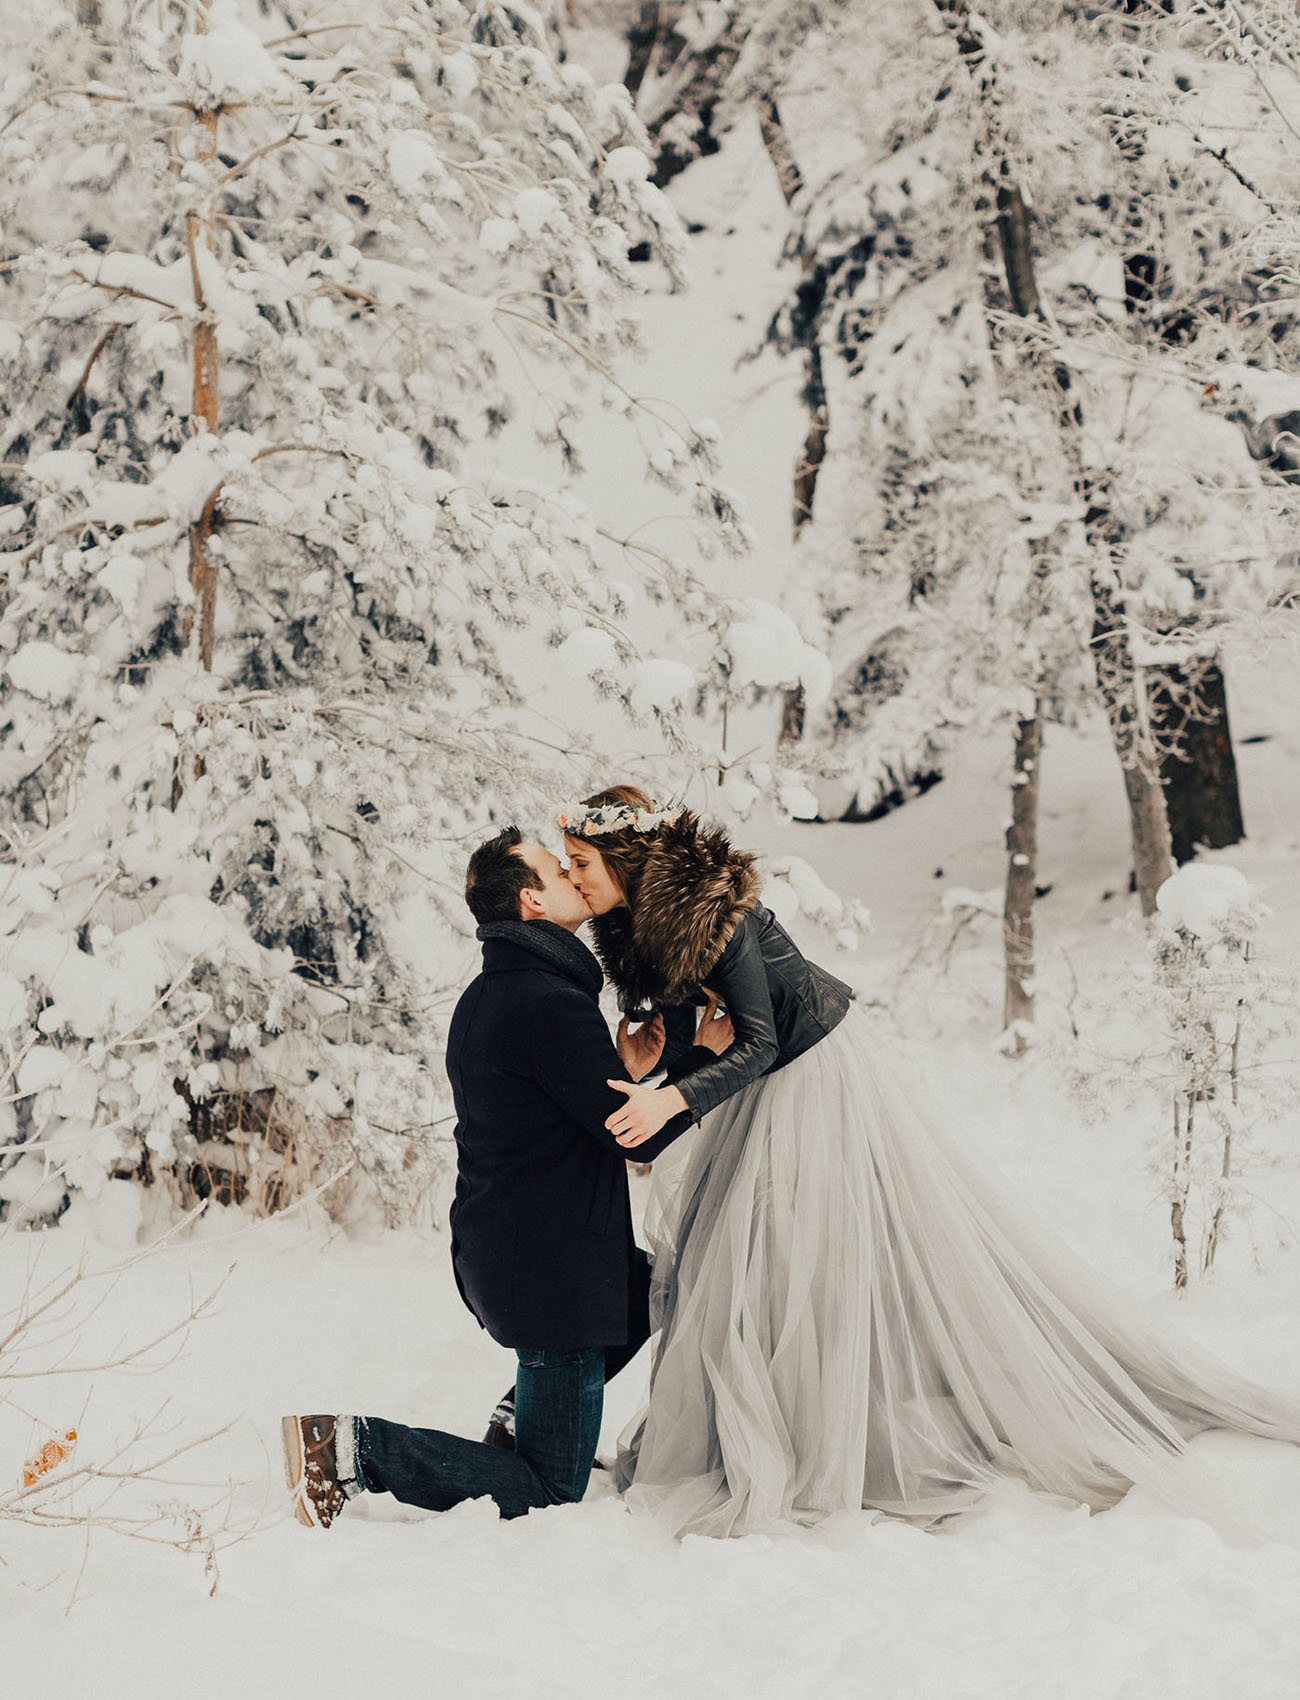 This Snowy Proposal Will Warm Your Heart